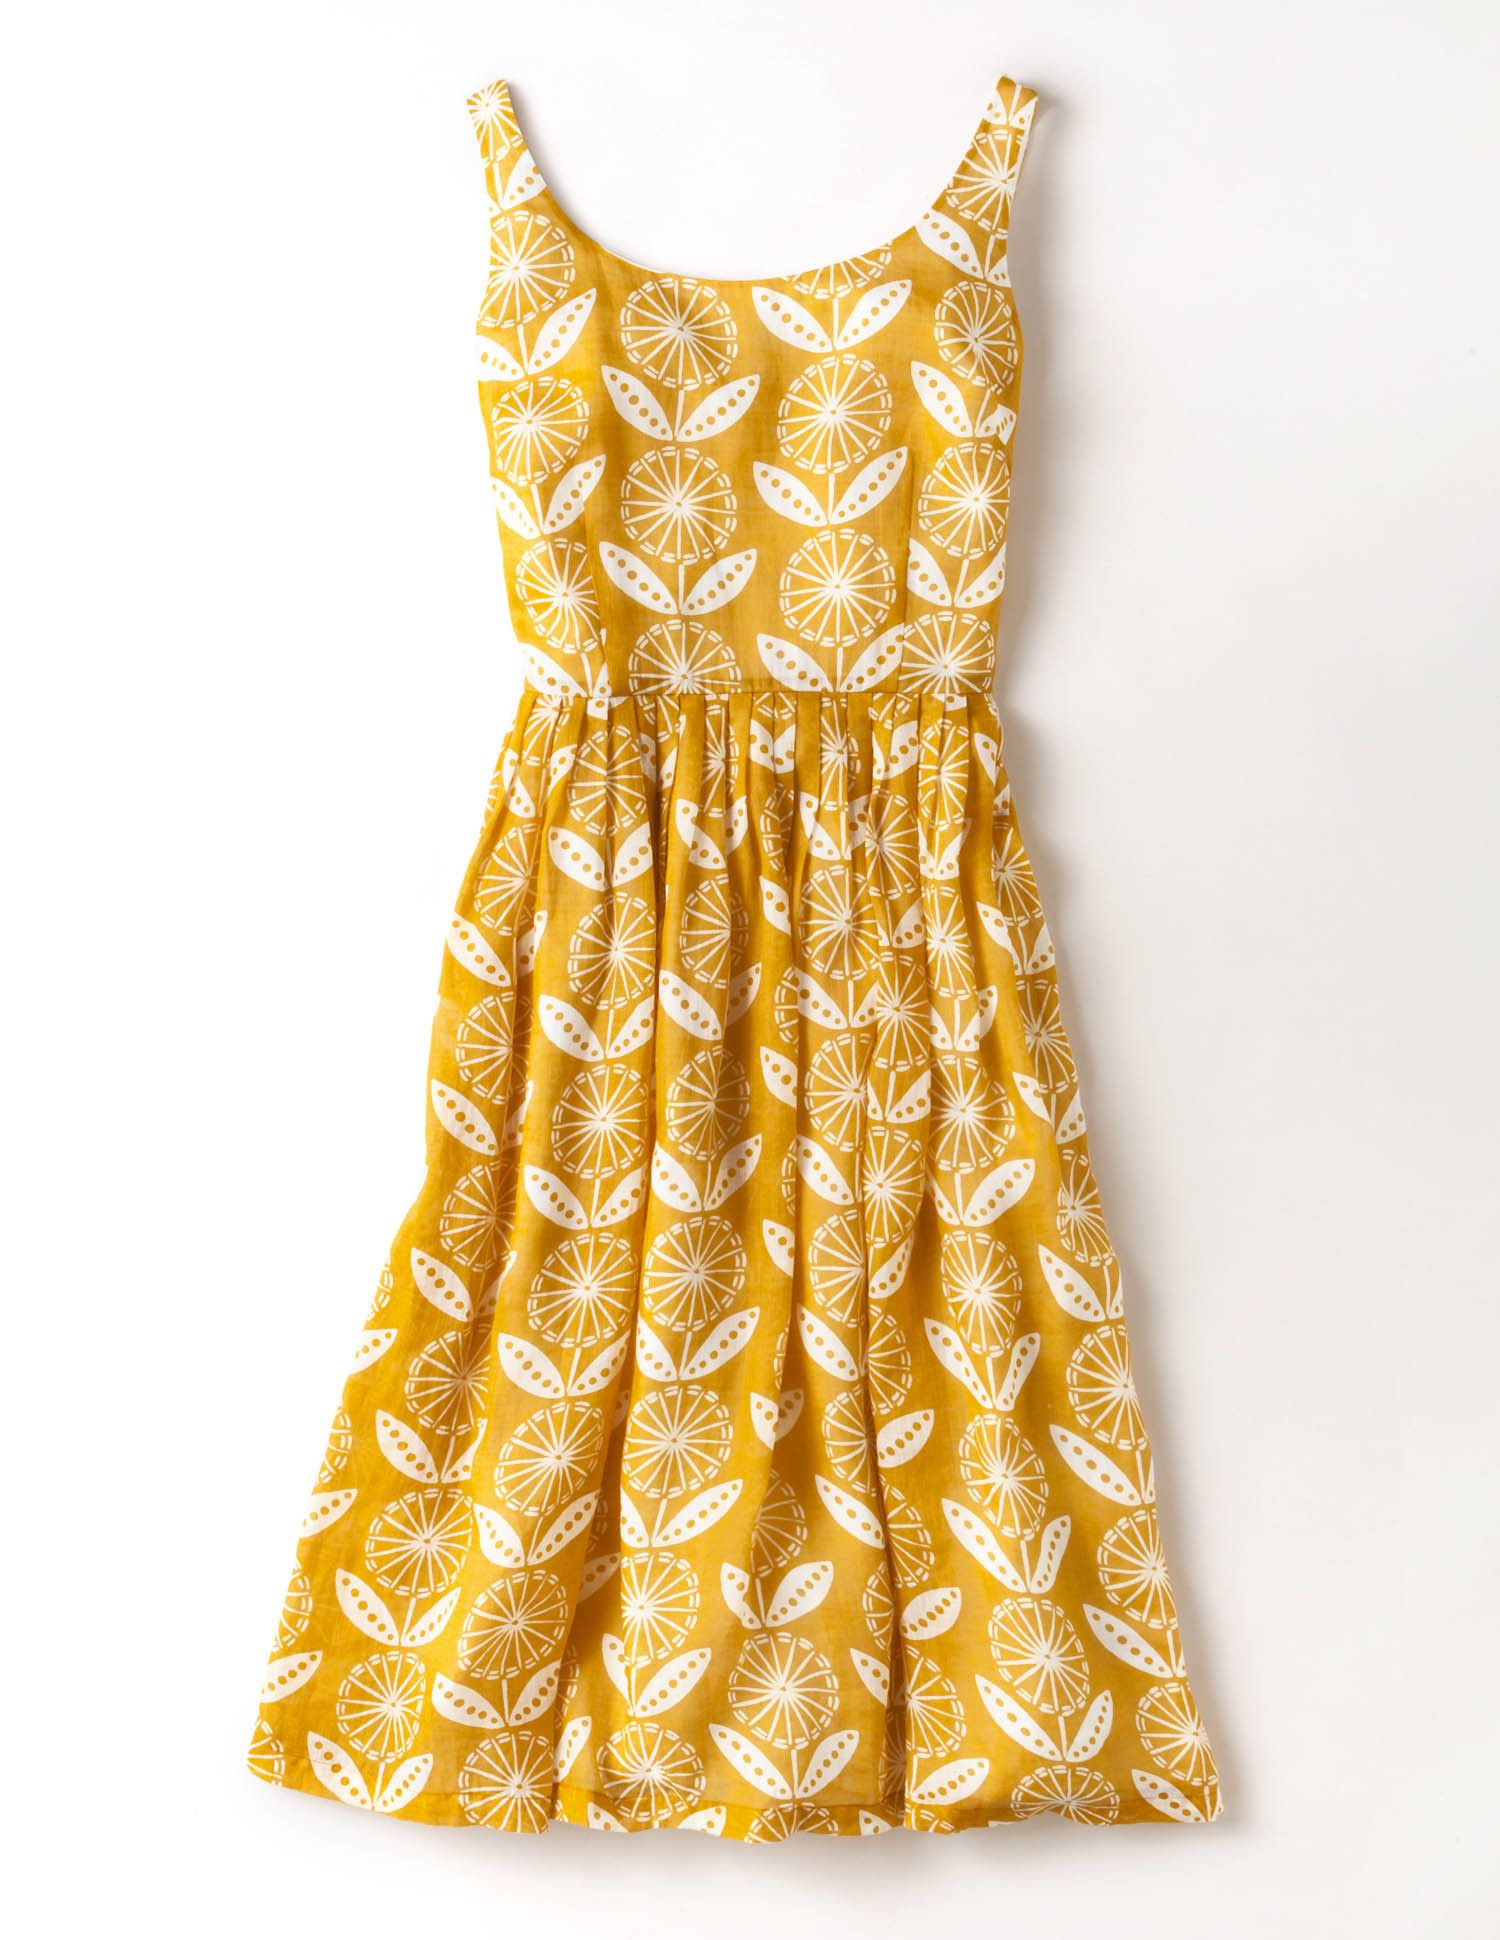 New vintage inspired spring collections boden mustard for Boden yellow